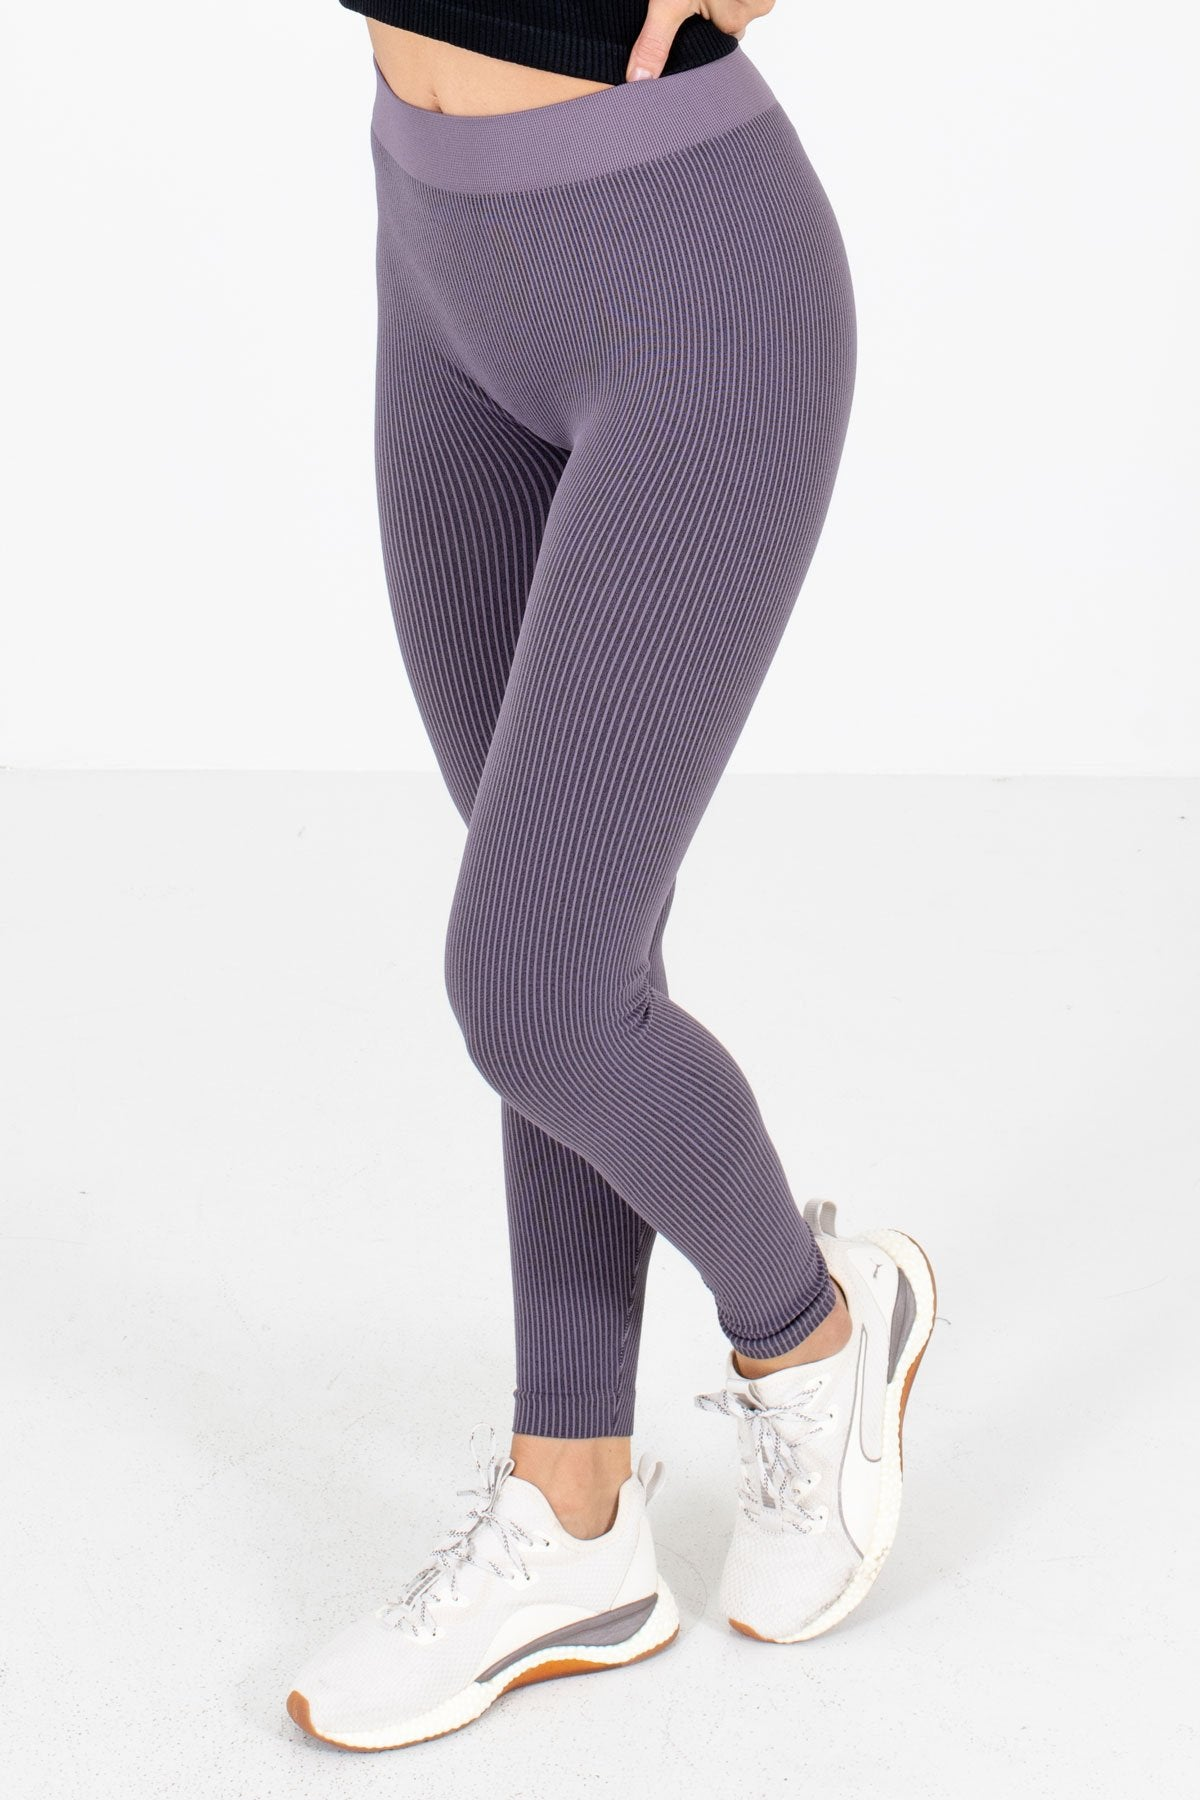 Purple Striped High-Quality Stretchy Material Boutique Active Leggings for Women